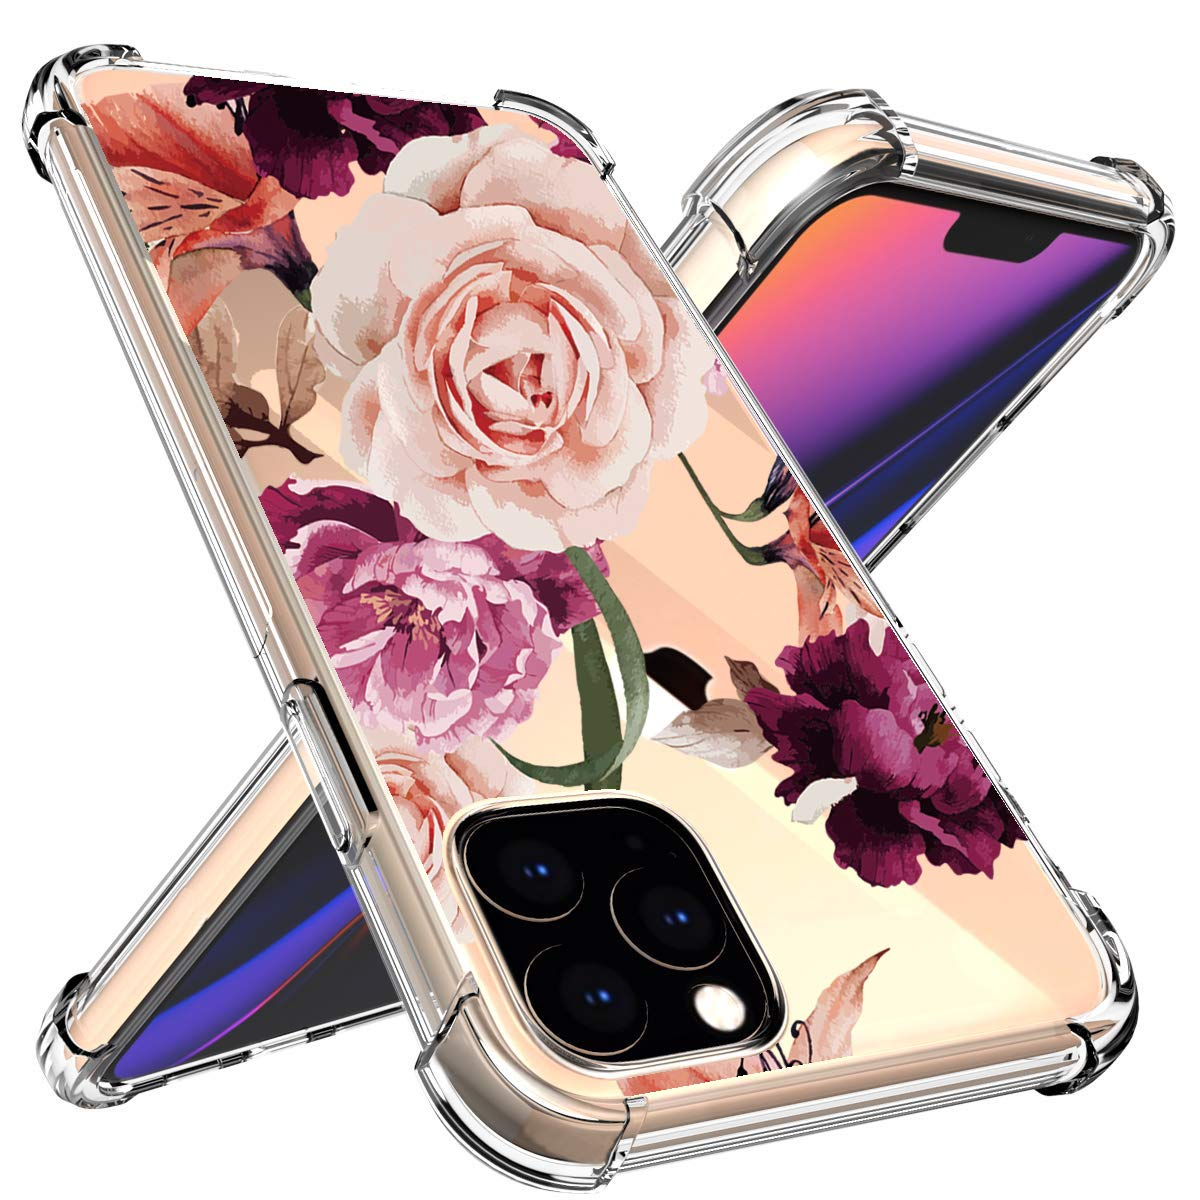 Floral for iPhone XIR 5G Case Flowers, iPhone XIR (6.1 inch) Case,Cute Flower for Girls/Women Slim Soft Silicone TPU Phone Case (11) by 54lany